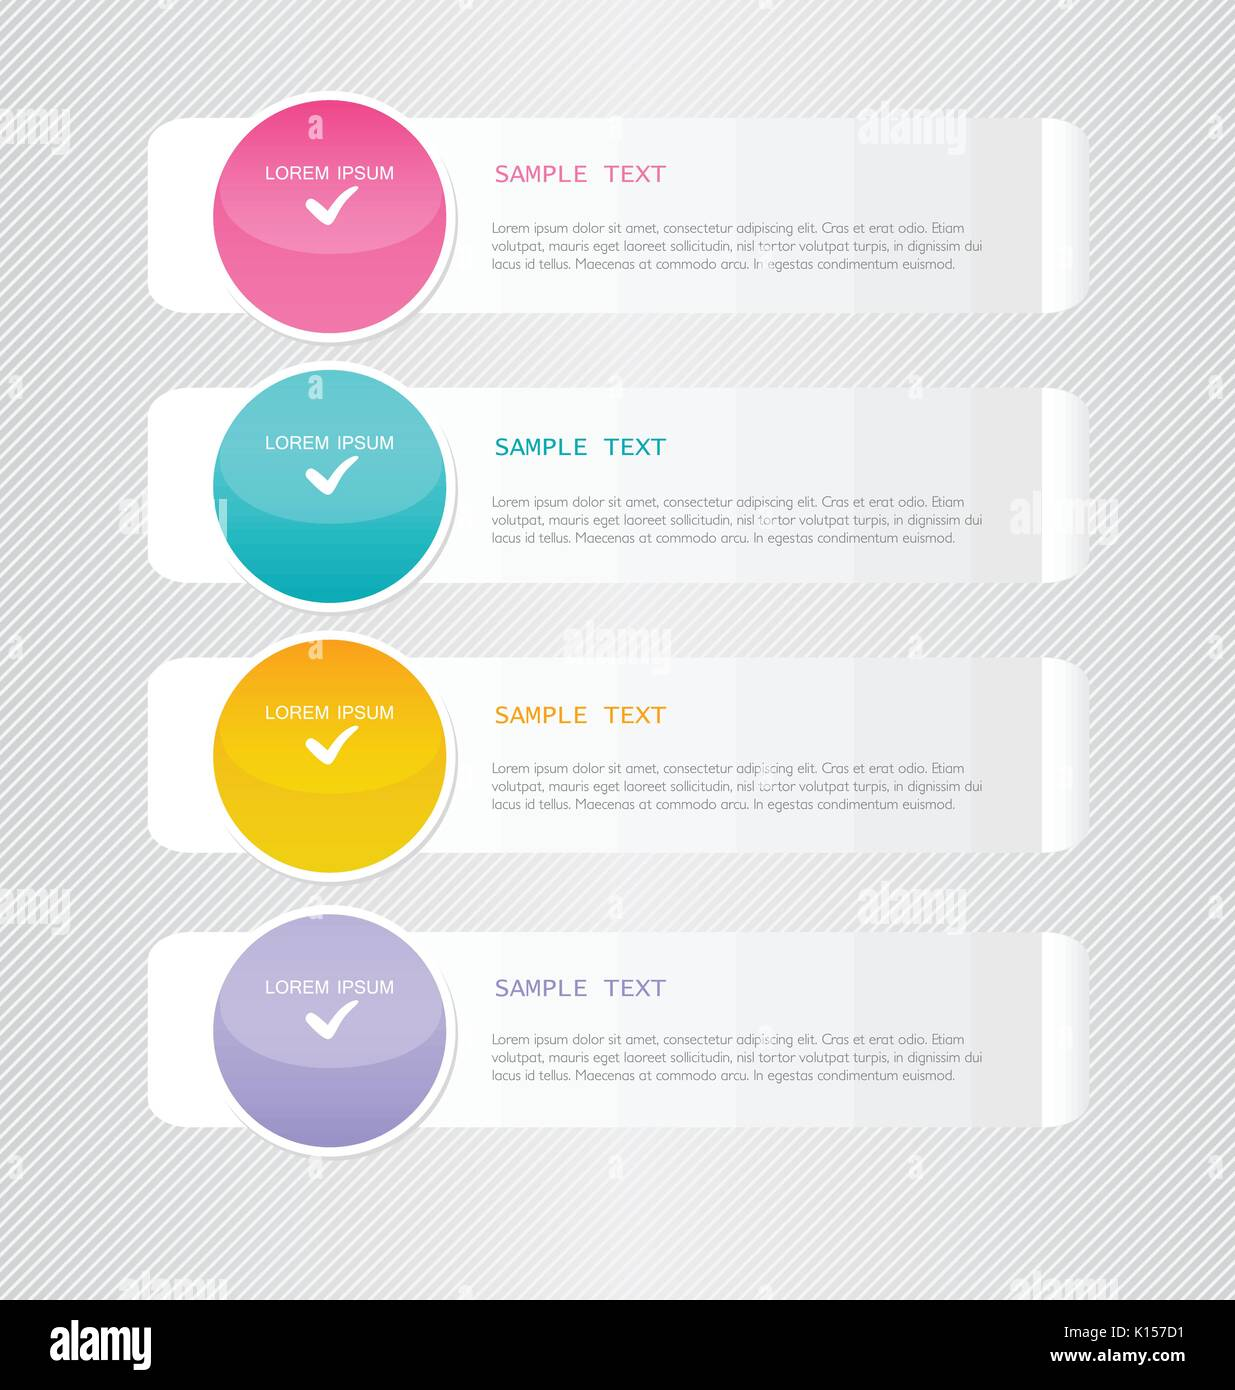 Select a template, personalize it, and publicize it. Modern Inforgraphic Template Can Be Used For Banners Website Templates And Designs Infographic Posters Brochures Ads Presentations Business Ed Stock Vector Image Art Alamy